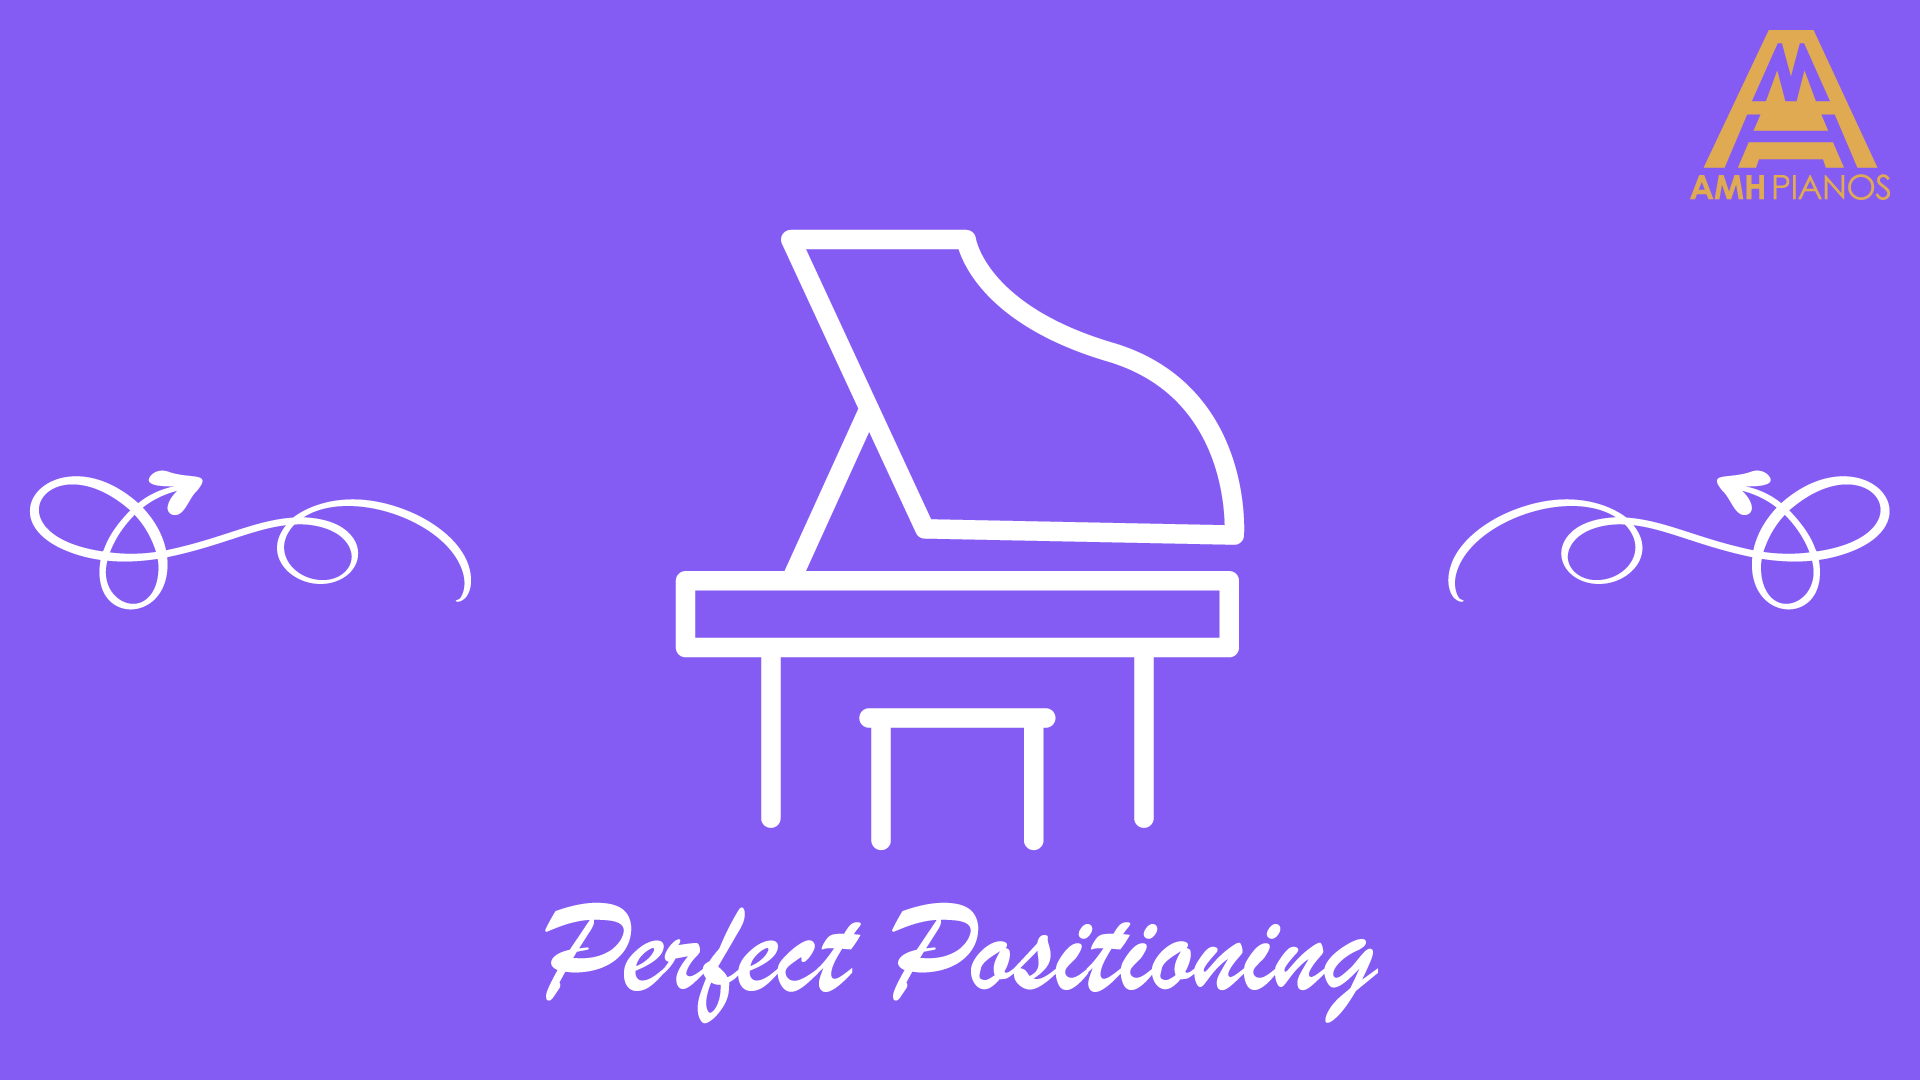 Illustration Of A Piano With Text Perfect Positioning